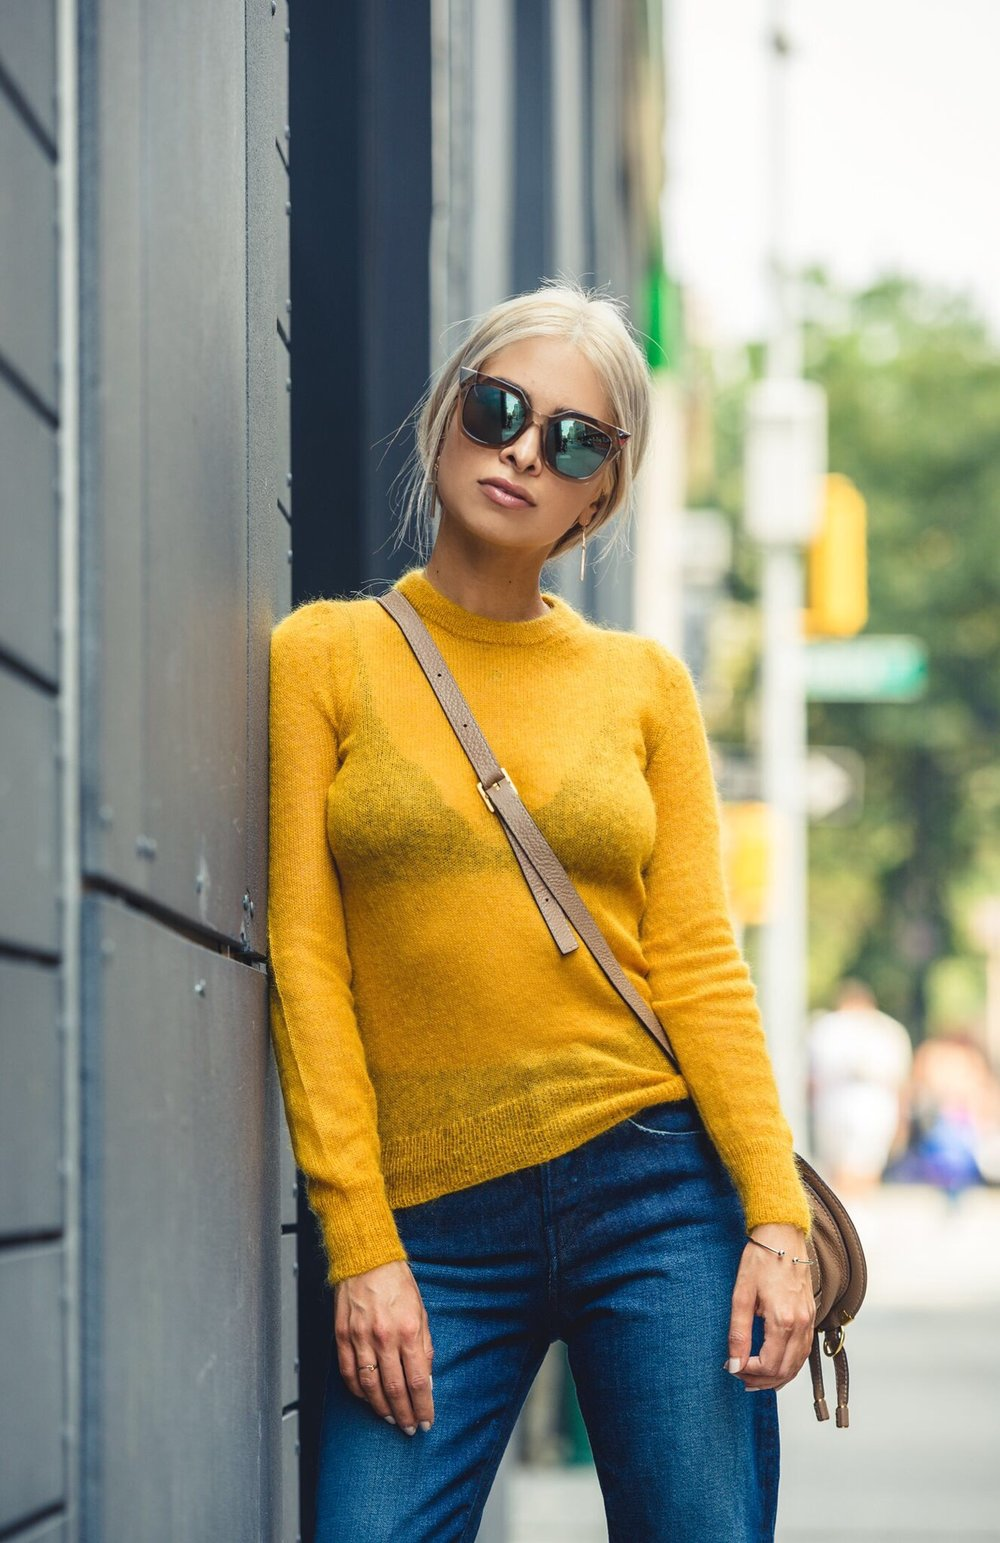 simon miller sweater_barneys_ marigold sweater_yellow sweater_cross earrings_fringe bottom denim_revolve_icy blonde hair_fendi sunglasses_cat eye sunglasses_chloe bag_chloe marcie mini